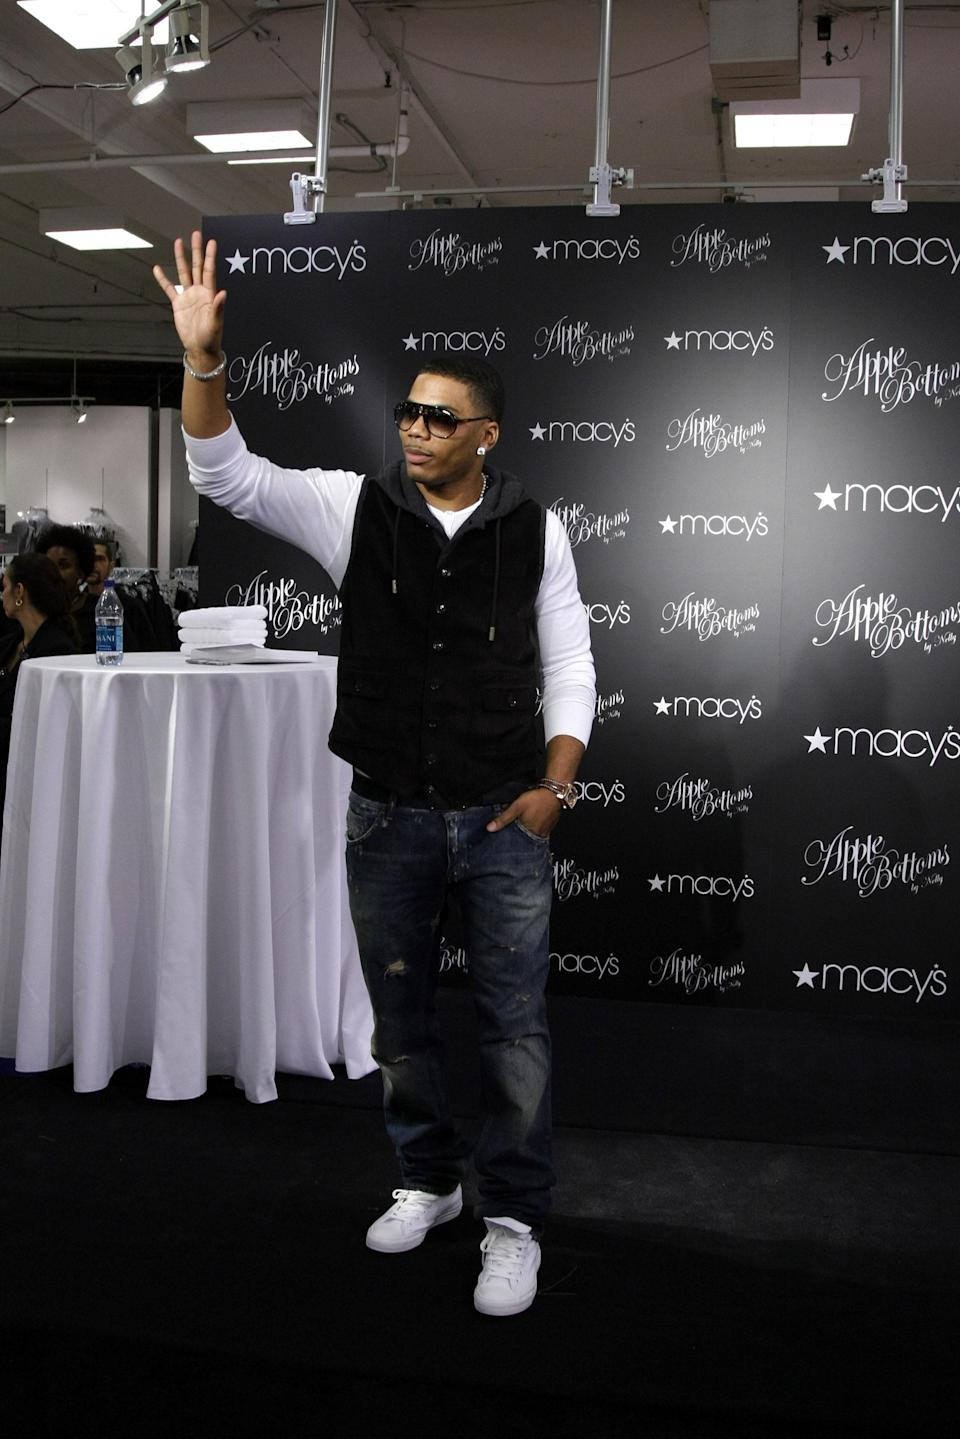 """<em>Shawty had them apple bottom jeans (jeans), boots with the fur (with the fur)</em>! Rapper Nelly launched his denim line, Apple Bottom Jeans, in 2003 and the collection went on to expand into ready-to-wear and accessories. (It was <a href=""""https://www.gq.com.au/entertainment/music/nellys-apple-bottom-jeans-are-set-for-the-comeback-you-didnt-know-you-wanted/news-story/a5ae022738747f183faf954c34c51462"""" rel=""""nofollow noopener"""" target=""""_blank"""" data-ylk=""""slk:even"""" class=""""link rapid-noclick-resp"""">even</a> 2006's sixth-most-Googled denim brand on the planet). While the line eventually folded, Nelly recently <a href=""""https://www.instagram.com/p/B9dFAoUJavj/?utm_source=ig_embed&ig_rid=d3b96923-c0e1-4cb2-a633-96691951c288"""" rel=""""nofollow noopener"""" target=""""_blank"""" data-ylk=""""slk:teased a comeback"""" class=""""link rapid-noclick-resp"""">teased a comeback</a>, though it has yet to come to fruition."""